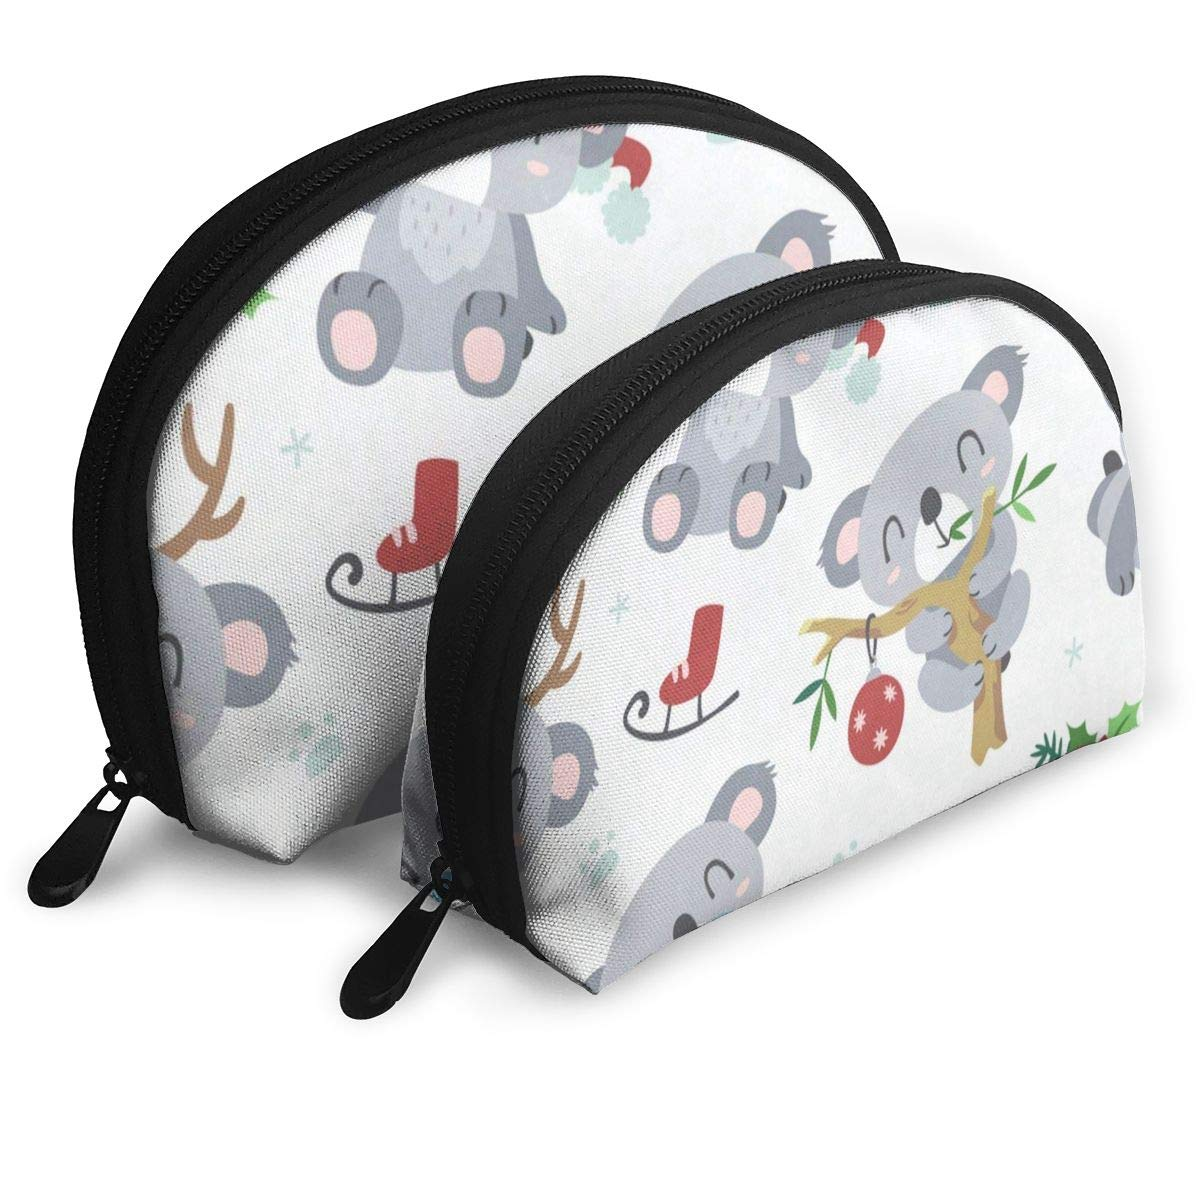 Amazon.com : Makeup Bag Koala Emoji Handy Half Moon Beauty ...